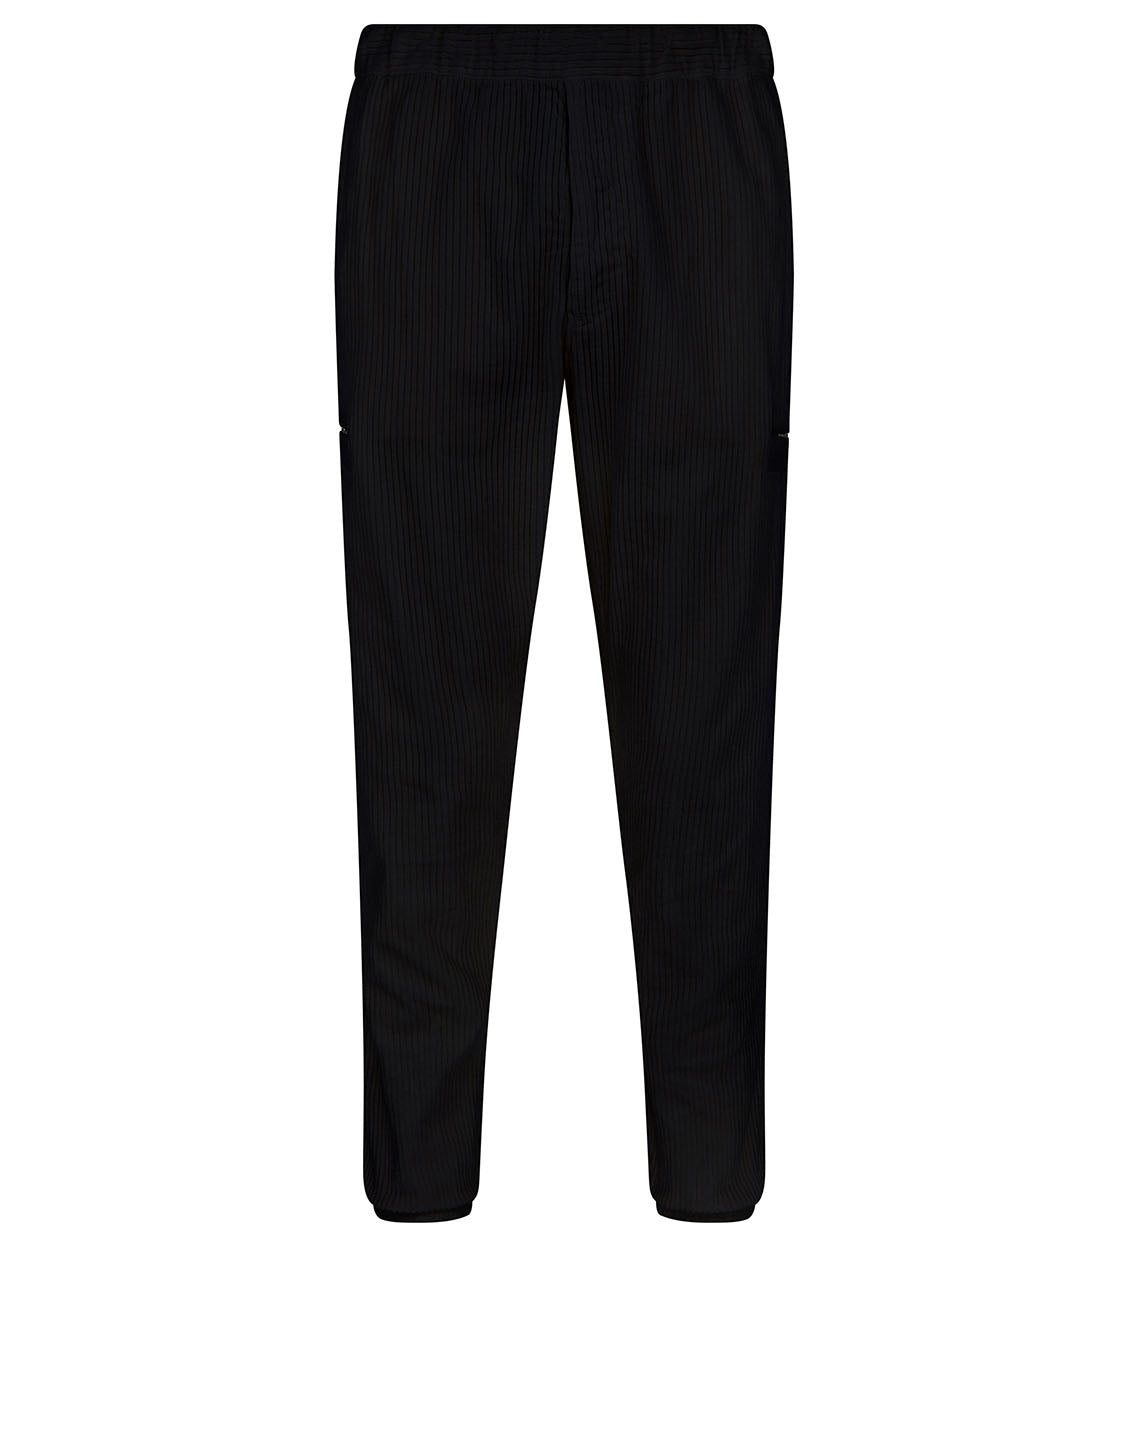 32211 Corduroy Pants in Black